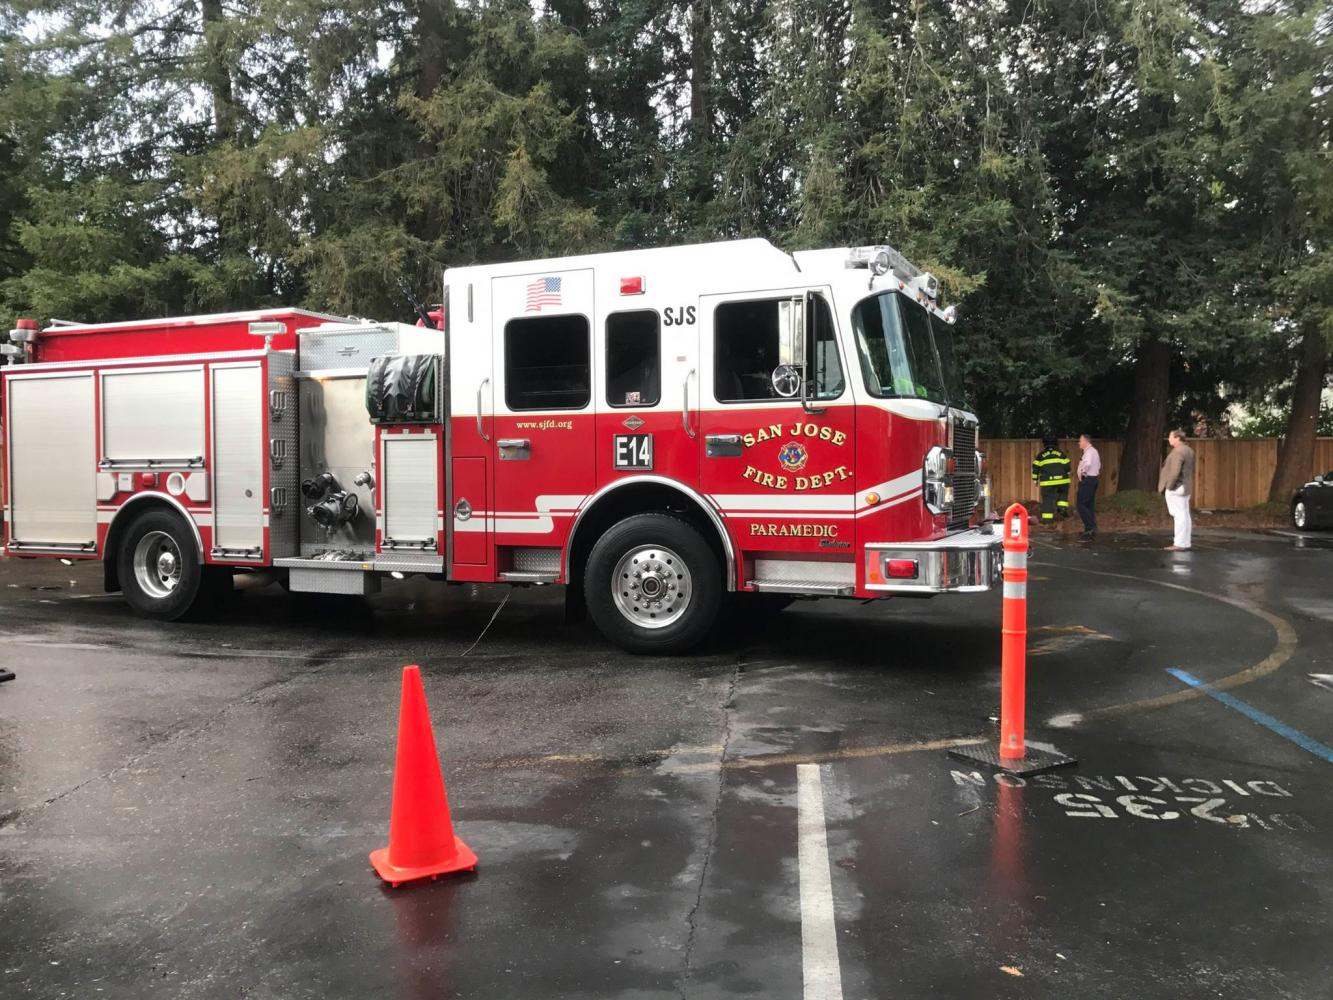 A San Jose Fire Department truck arrives at the scene of the lightning strike. By the time the firefighters arrived, the tree's fire had already gone out.